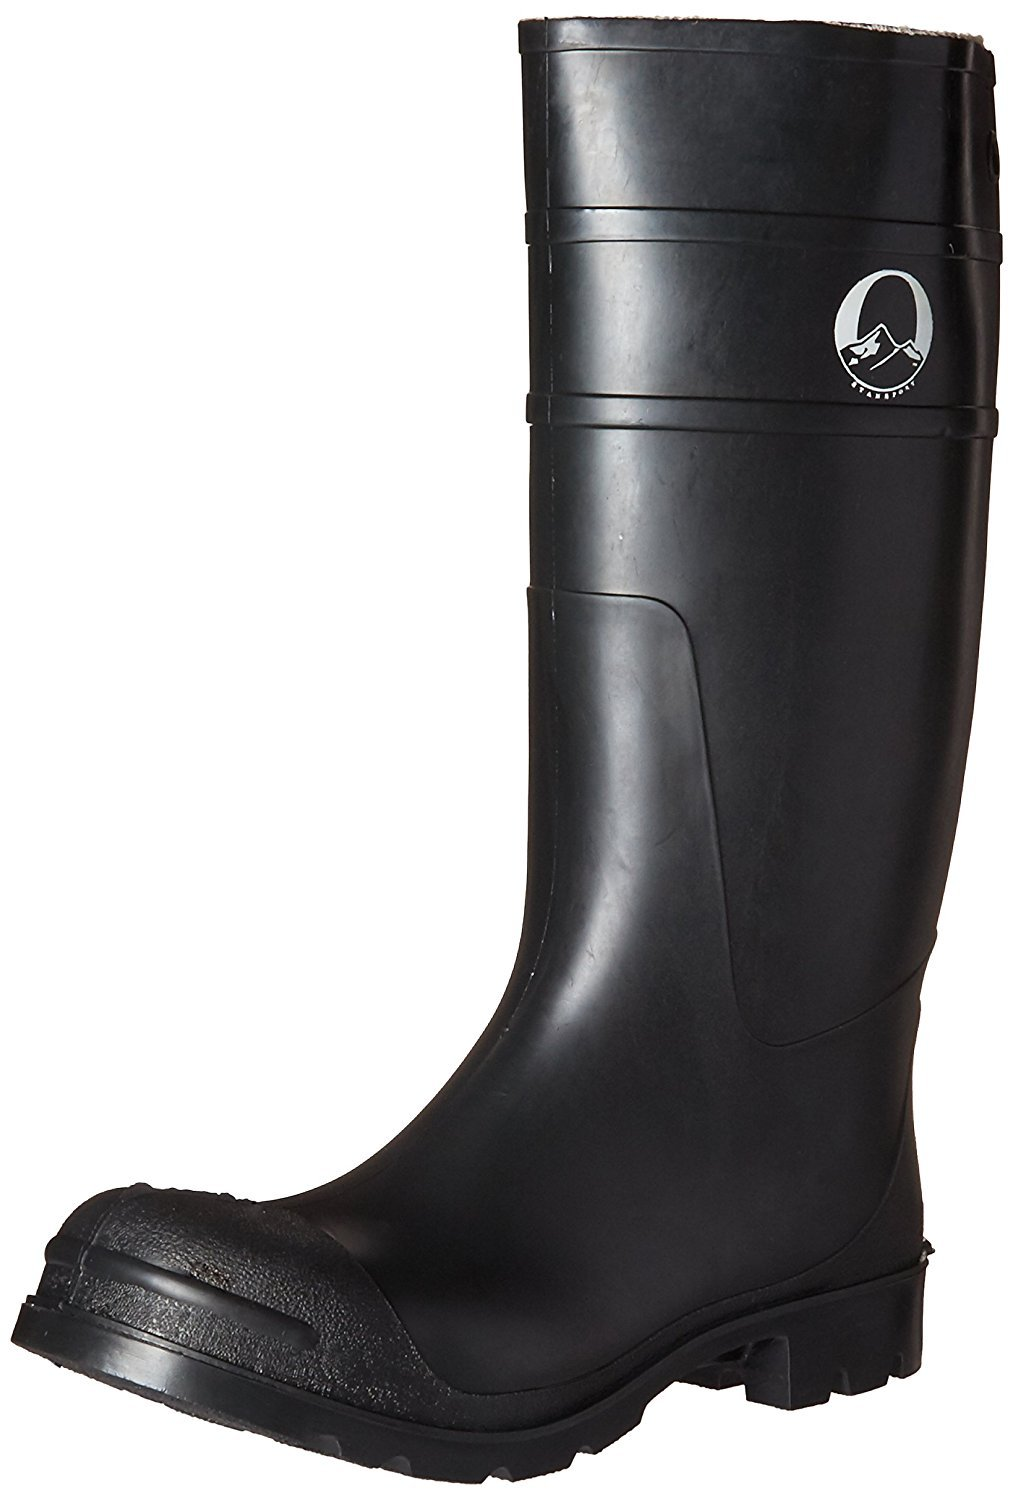 Stansport Men's USA Knee Boots, Size 7